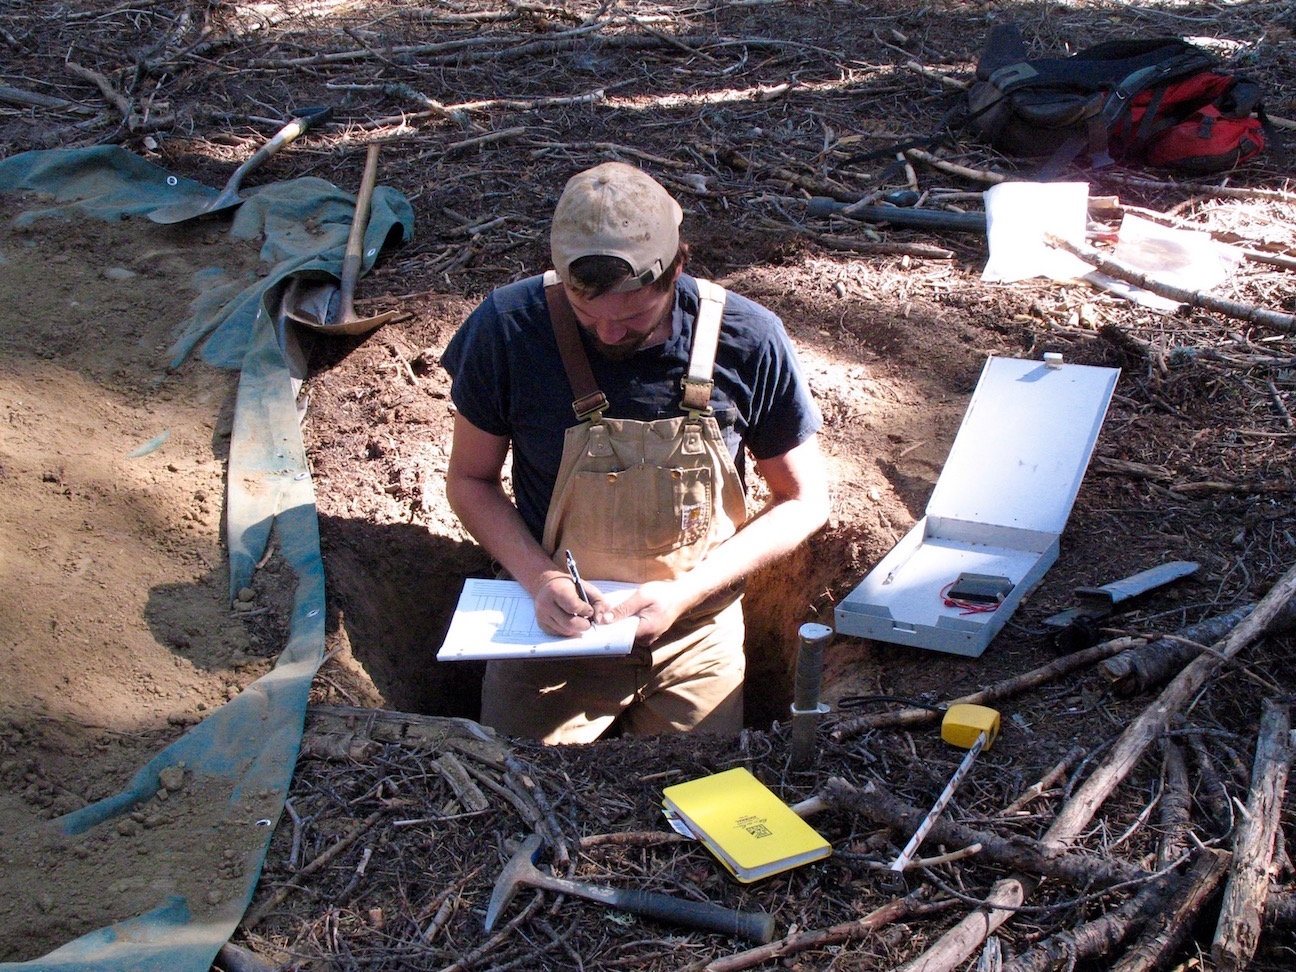 scientist samples soil and rocks